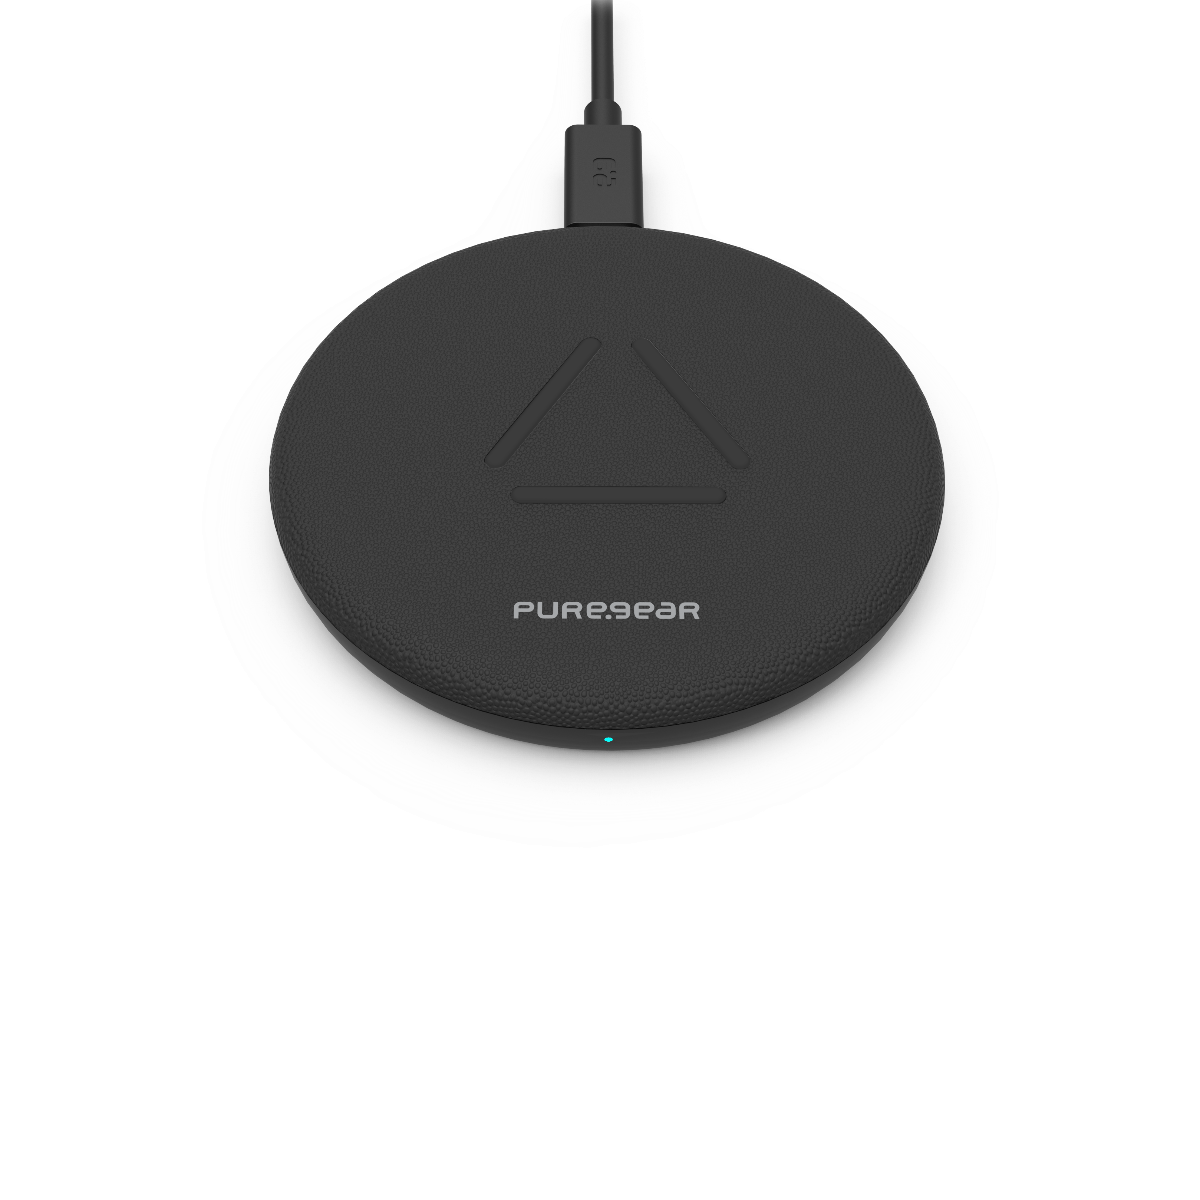 7.5W/10W Fast Wireless Charging Pad - Black